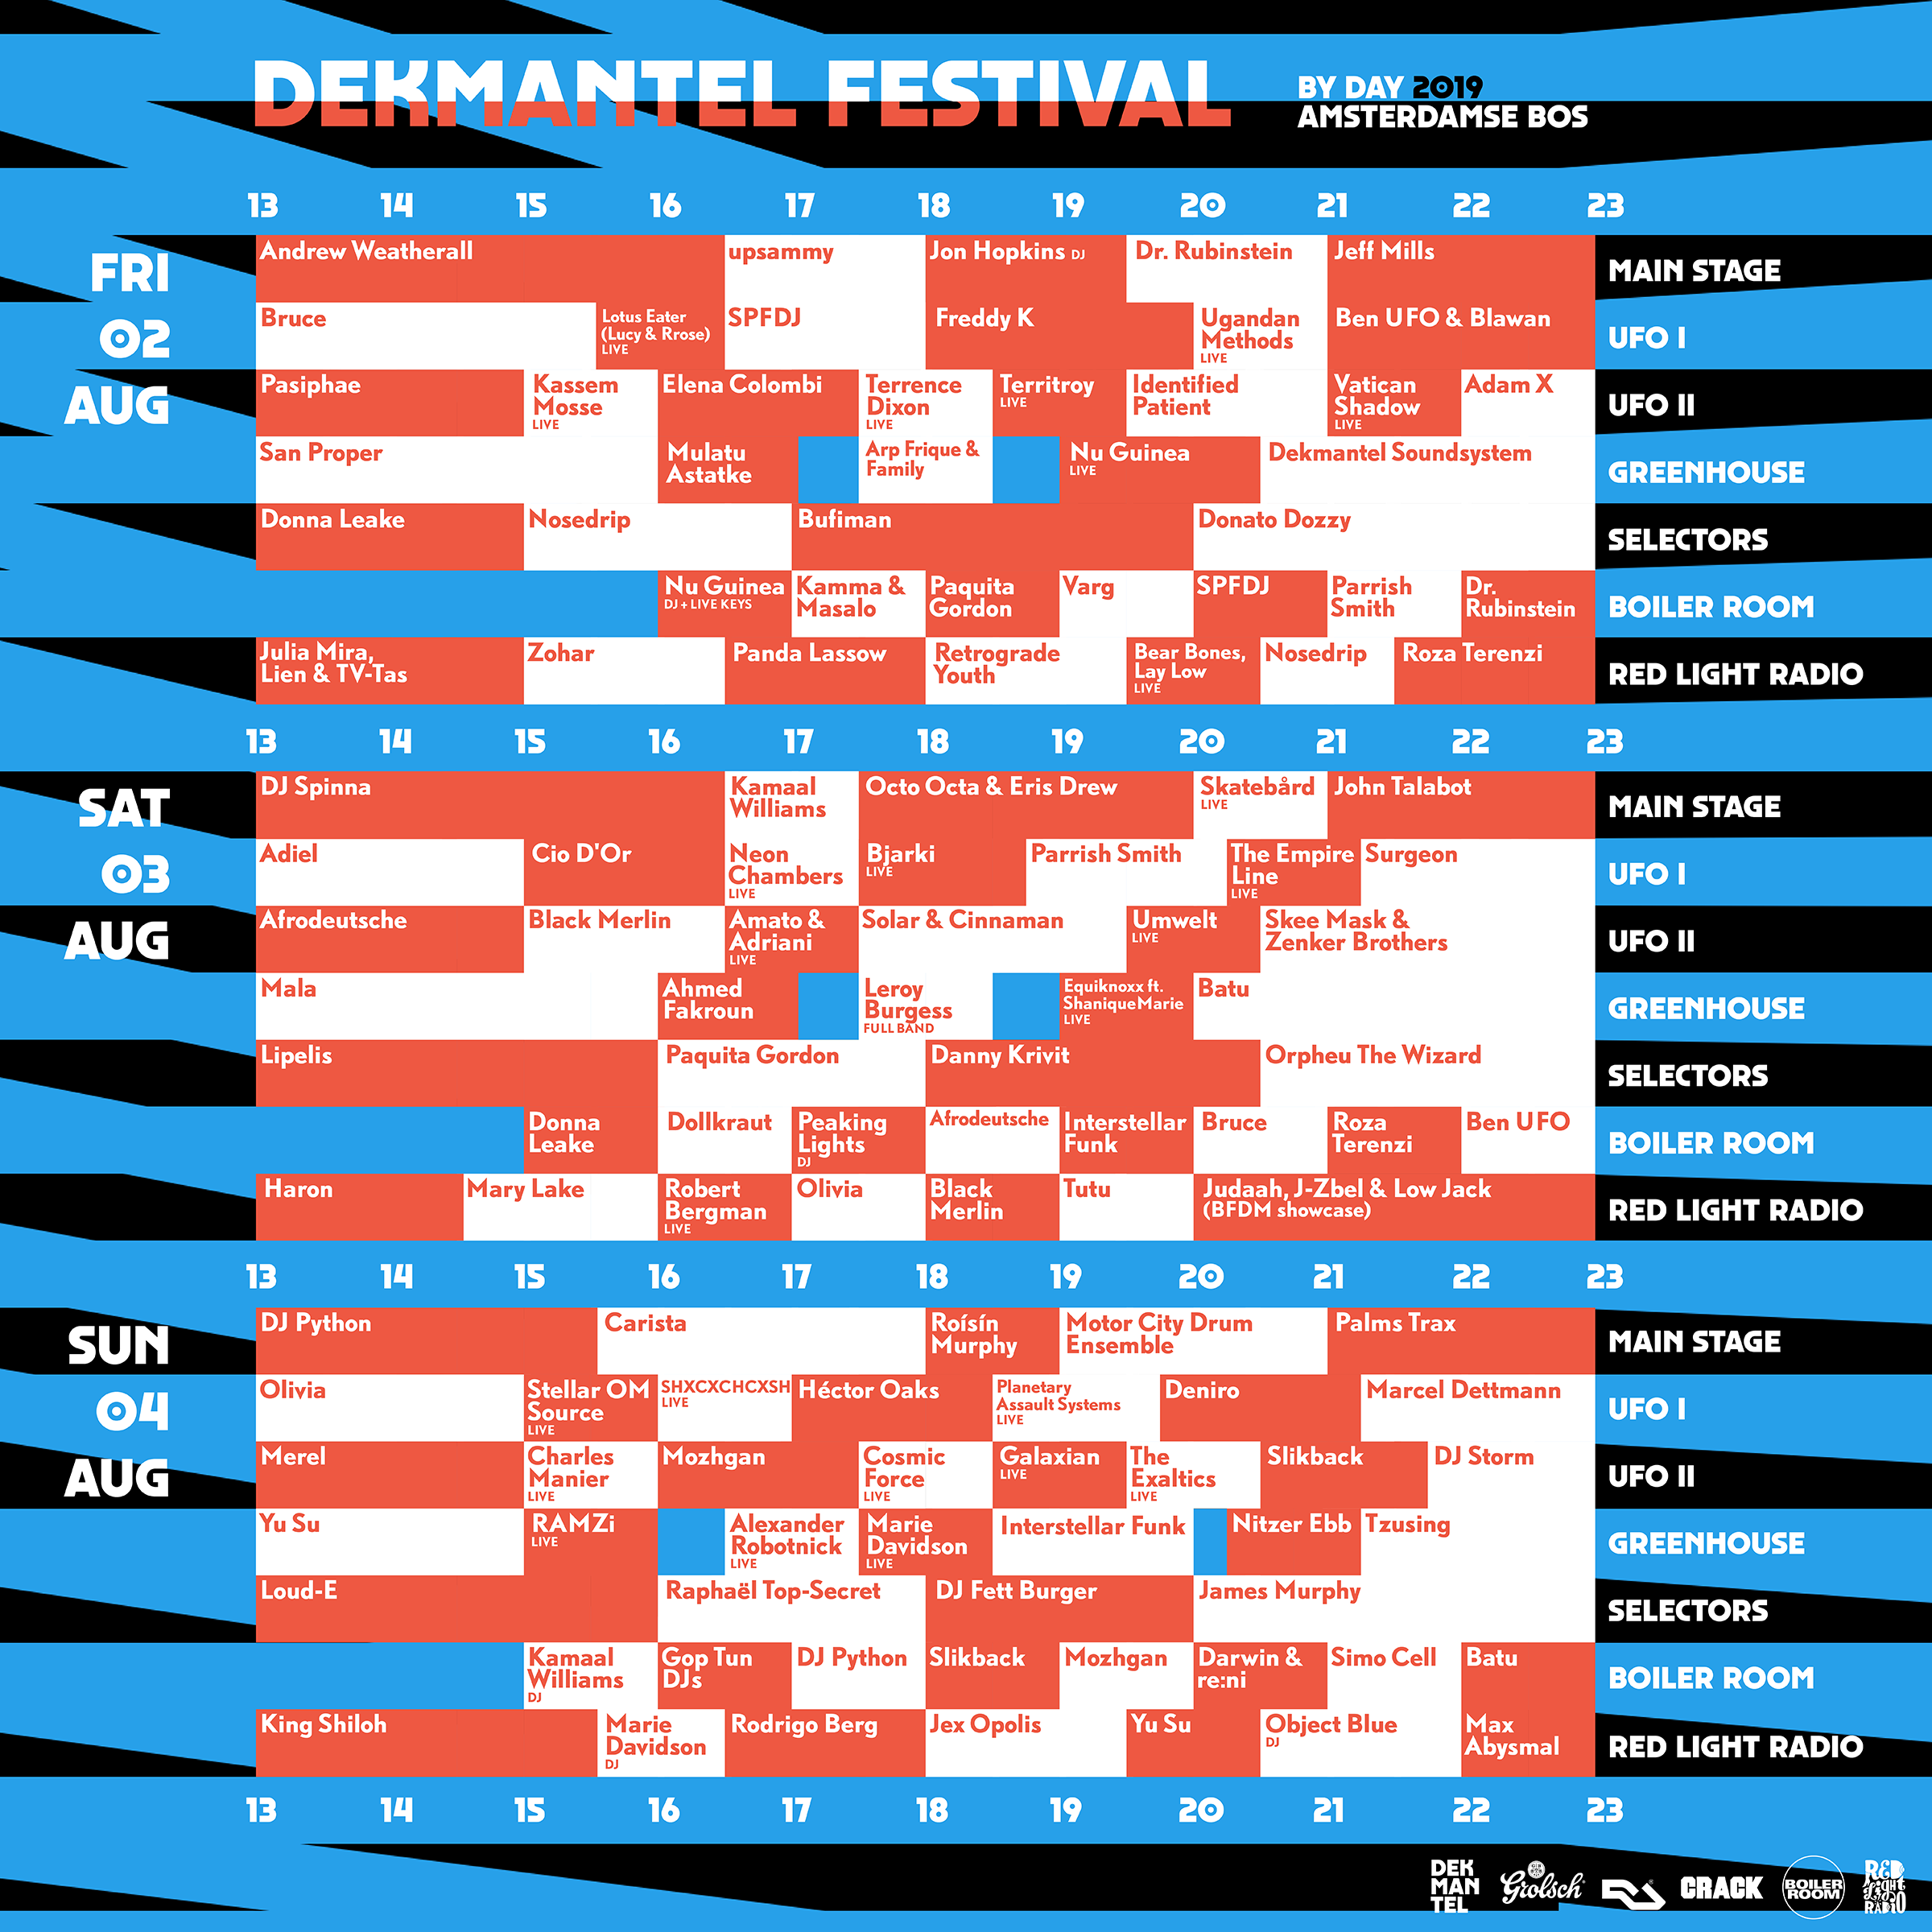 DF19-timetable-bos-07.png